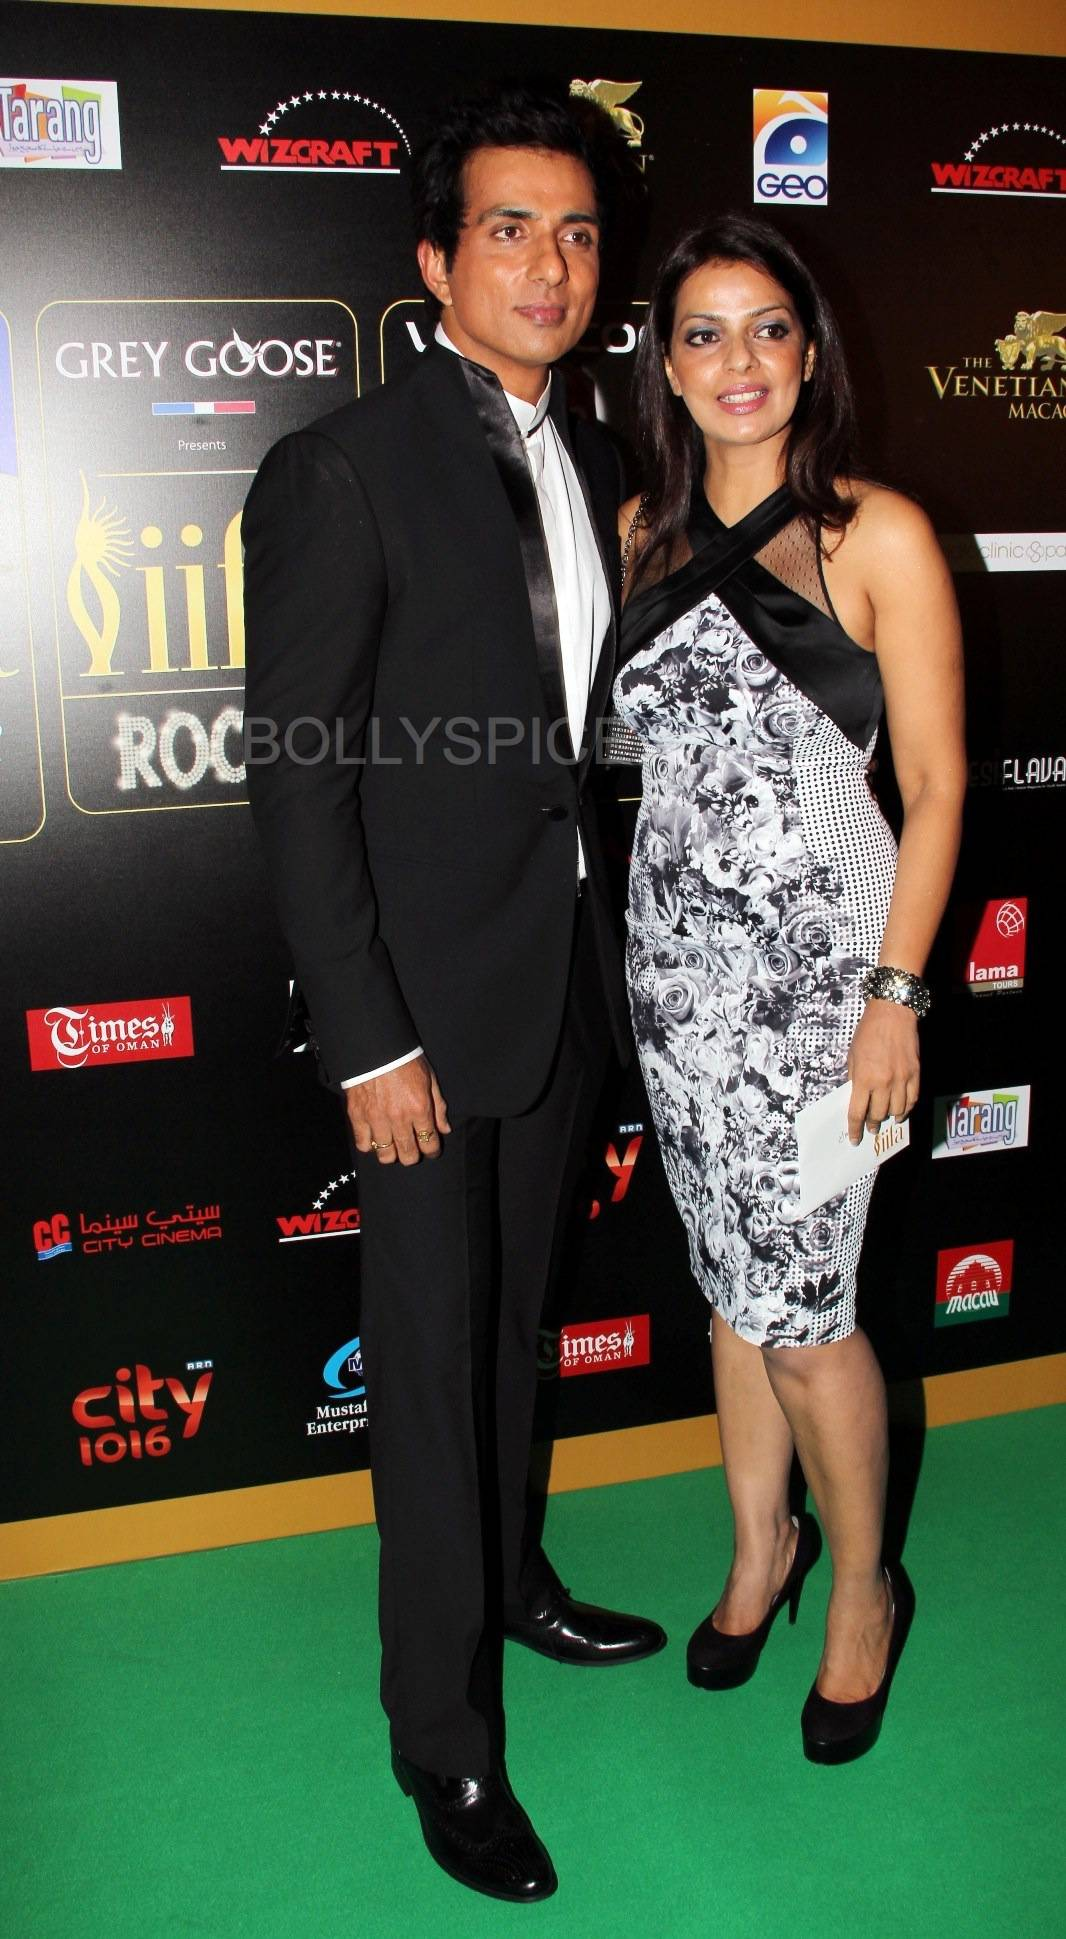 Sonu Sood at IIFA Rocks Green carpet More from IIFA Rocks including winners and more Green Carpet pics! Pics added!